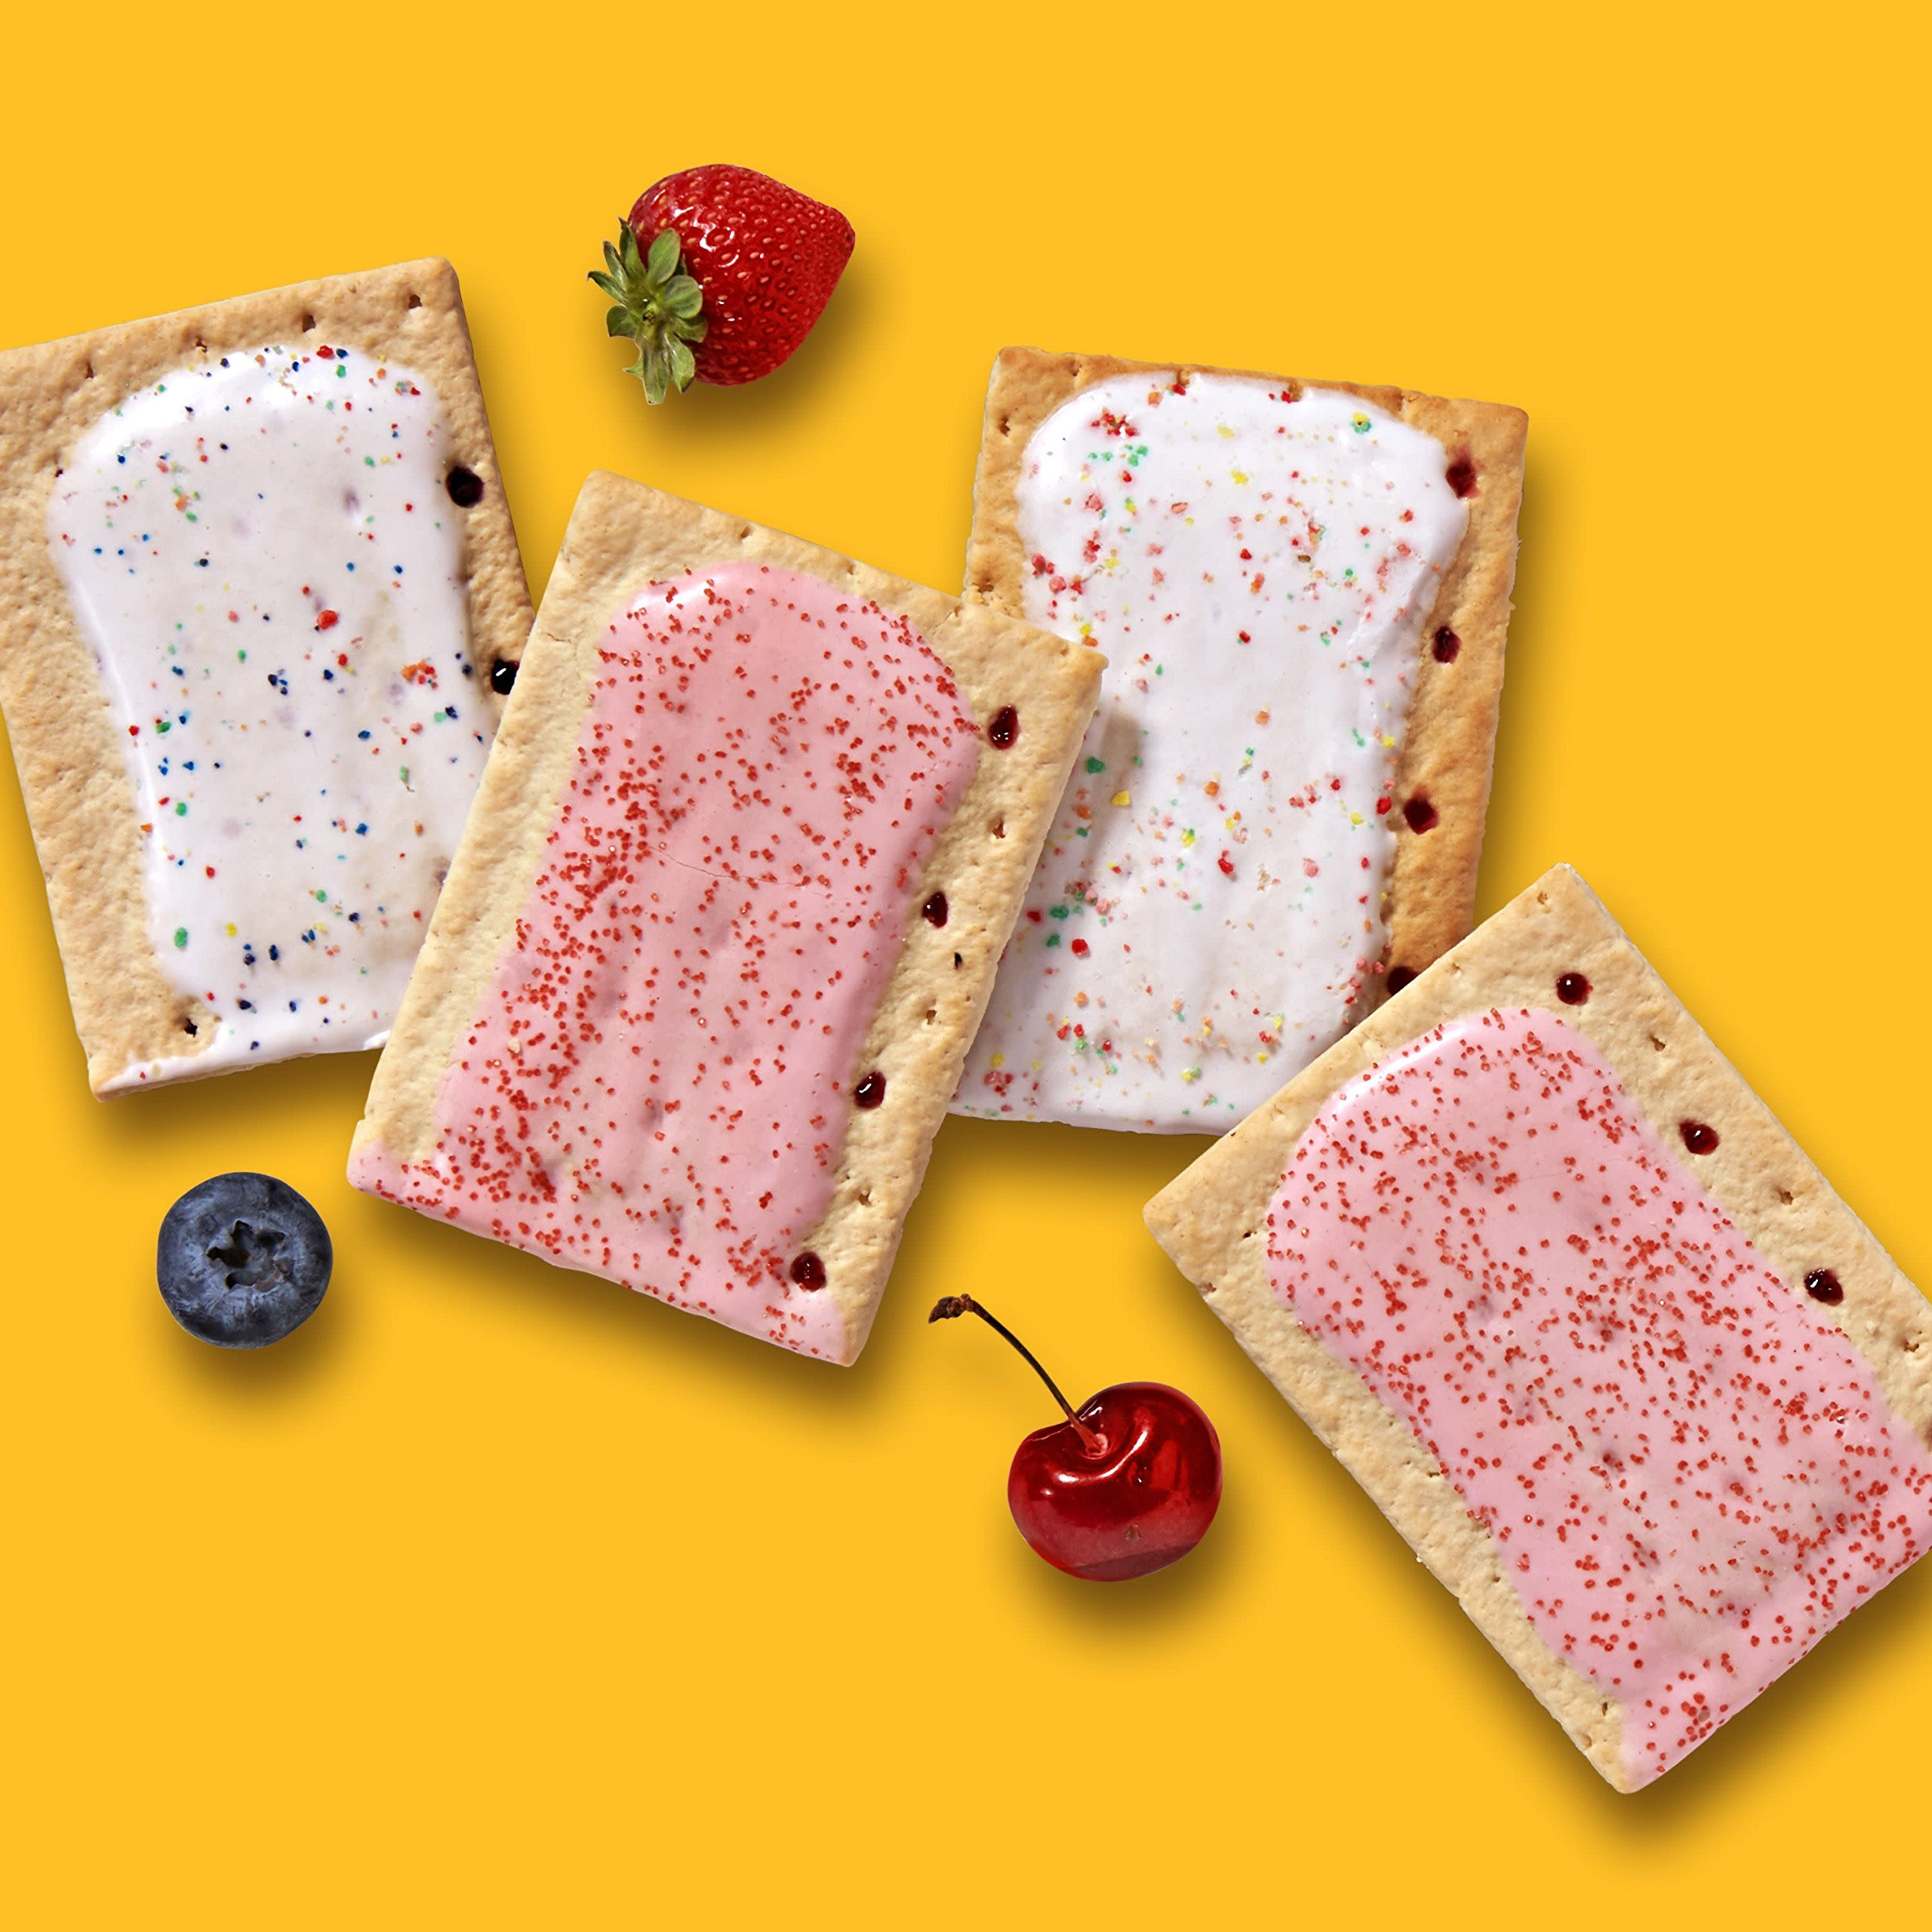 Pop-Tarts Breakfast Toaster Pastries, Flavored Variety Pack, Frosted Strawberry, Frosted Blueberry, Frosted Cherry, 12 Count,(Pack of 12) by Pop-Tarts (Image #6)